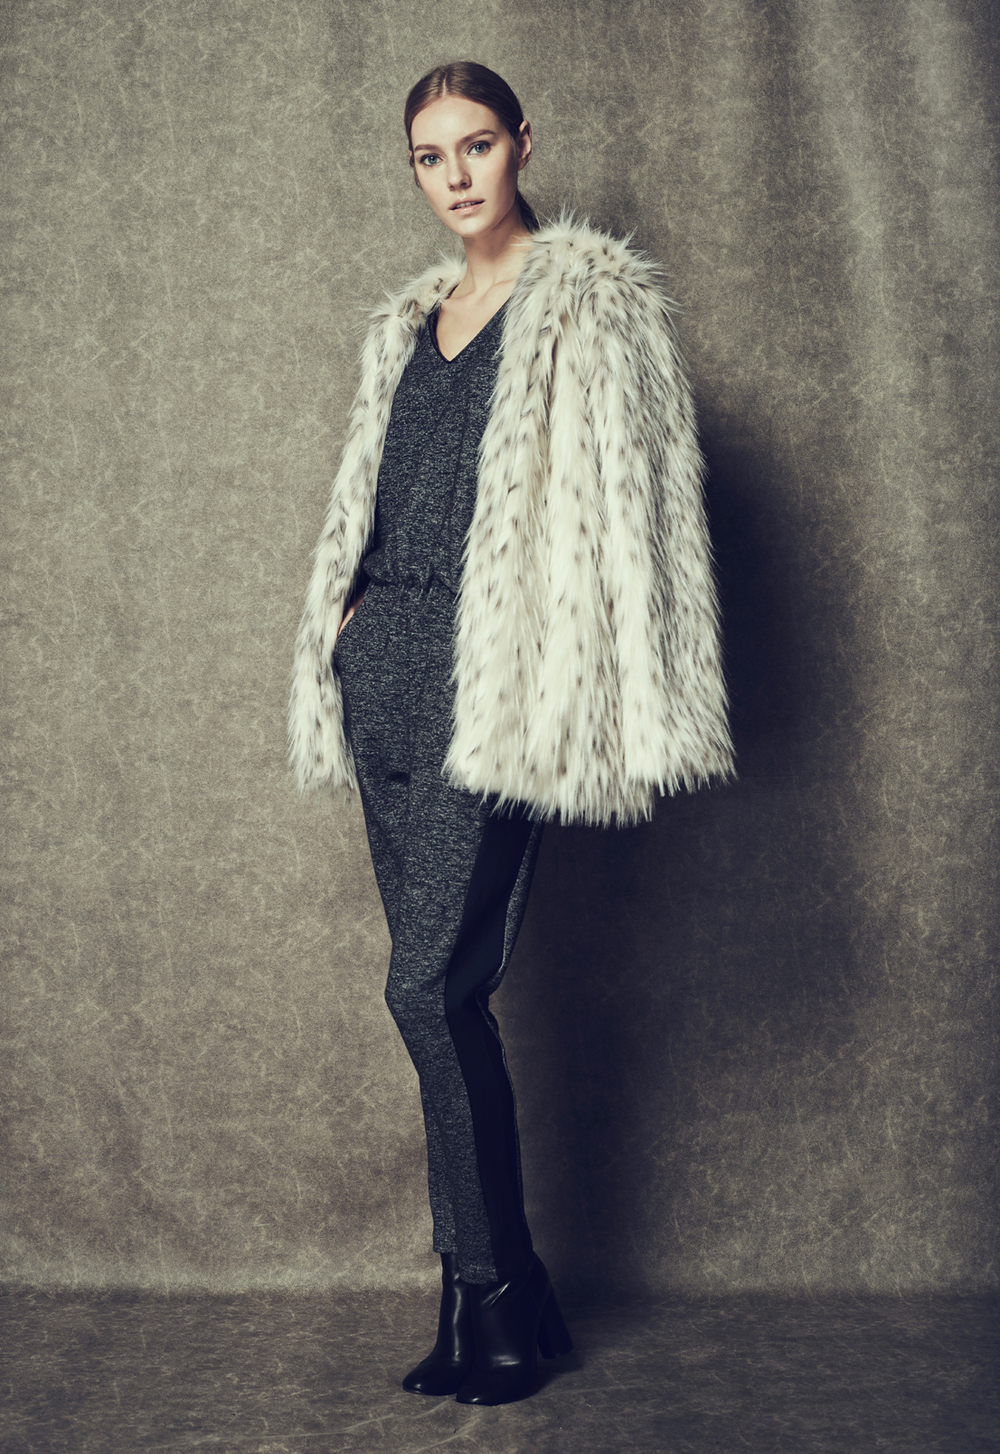 Dalmatian Fur Coat & Mottled Knit Jumpsuit